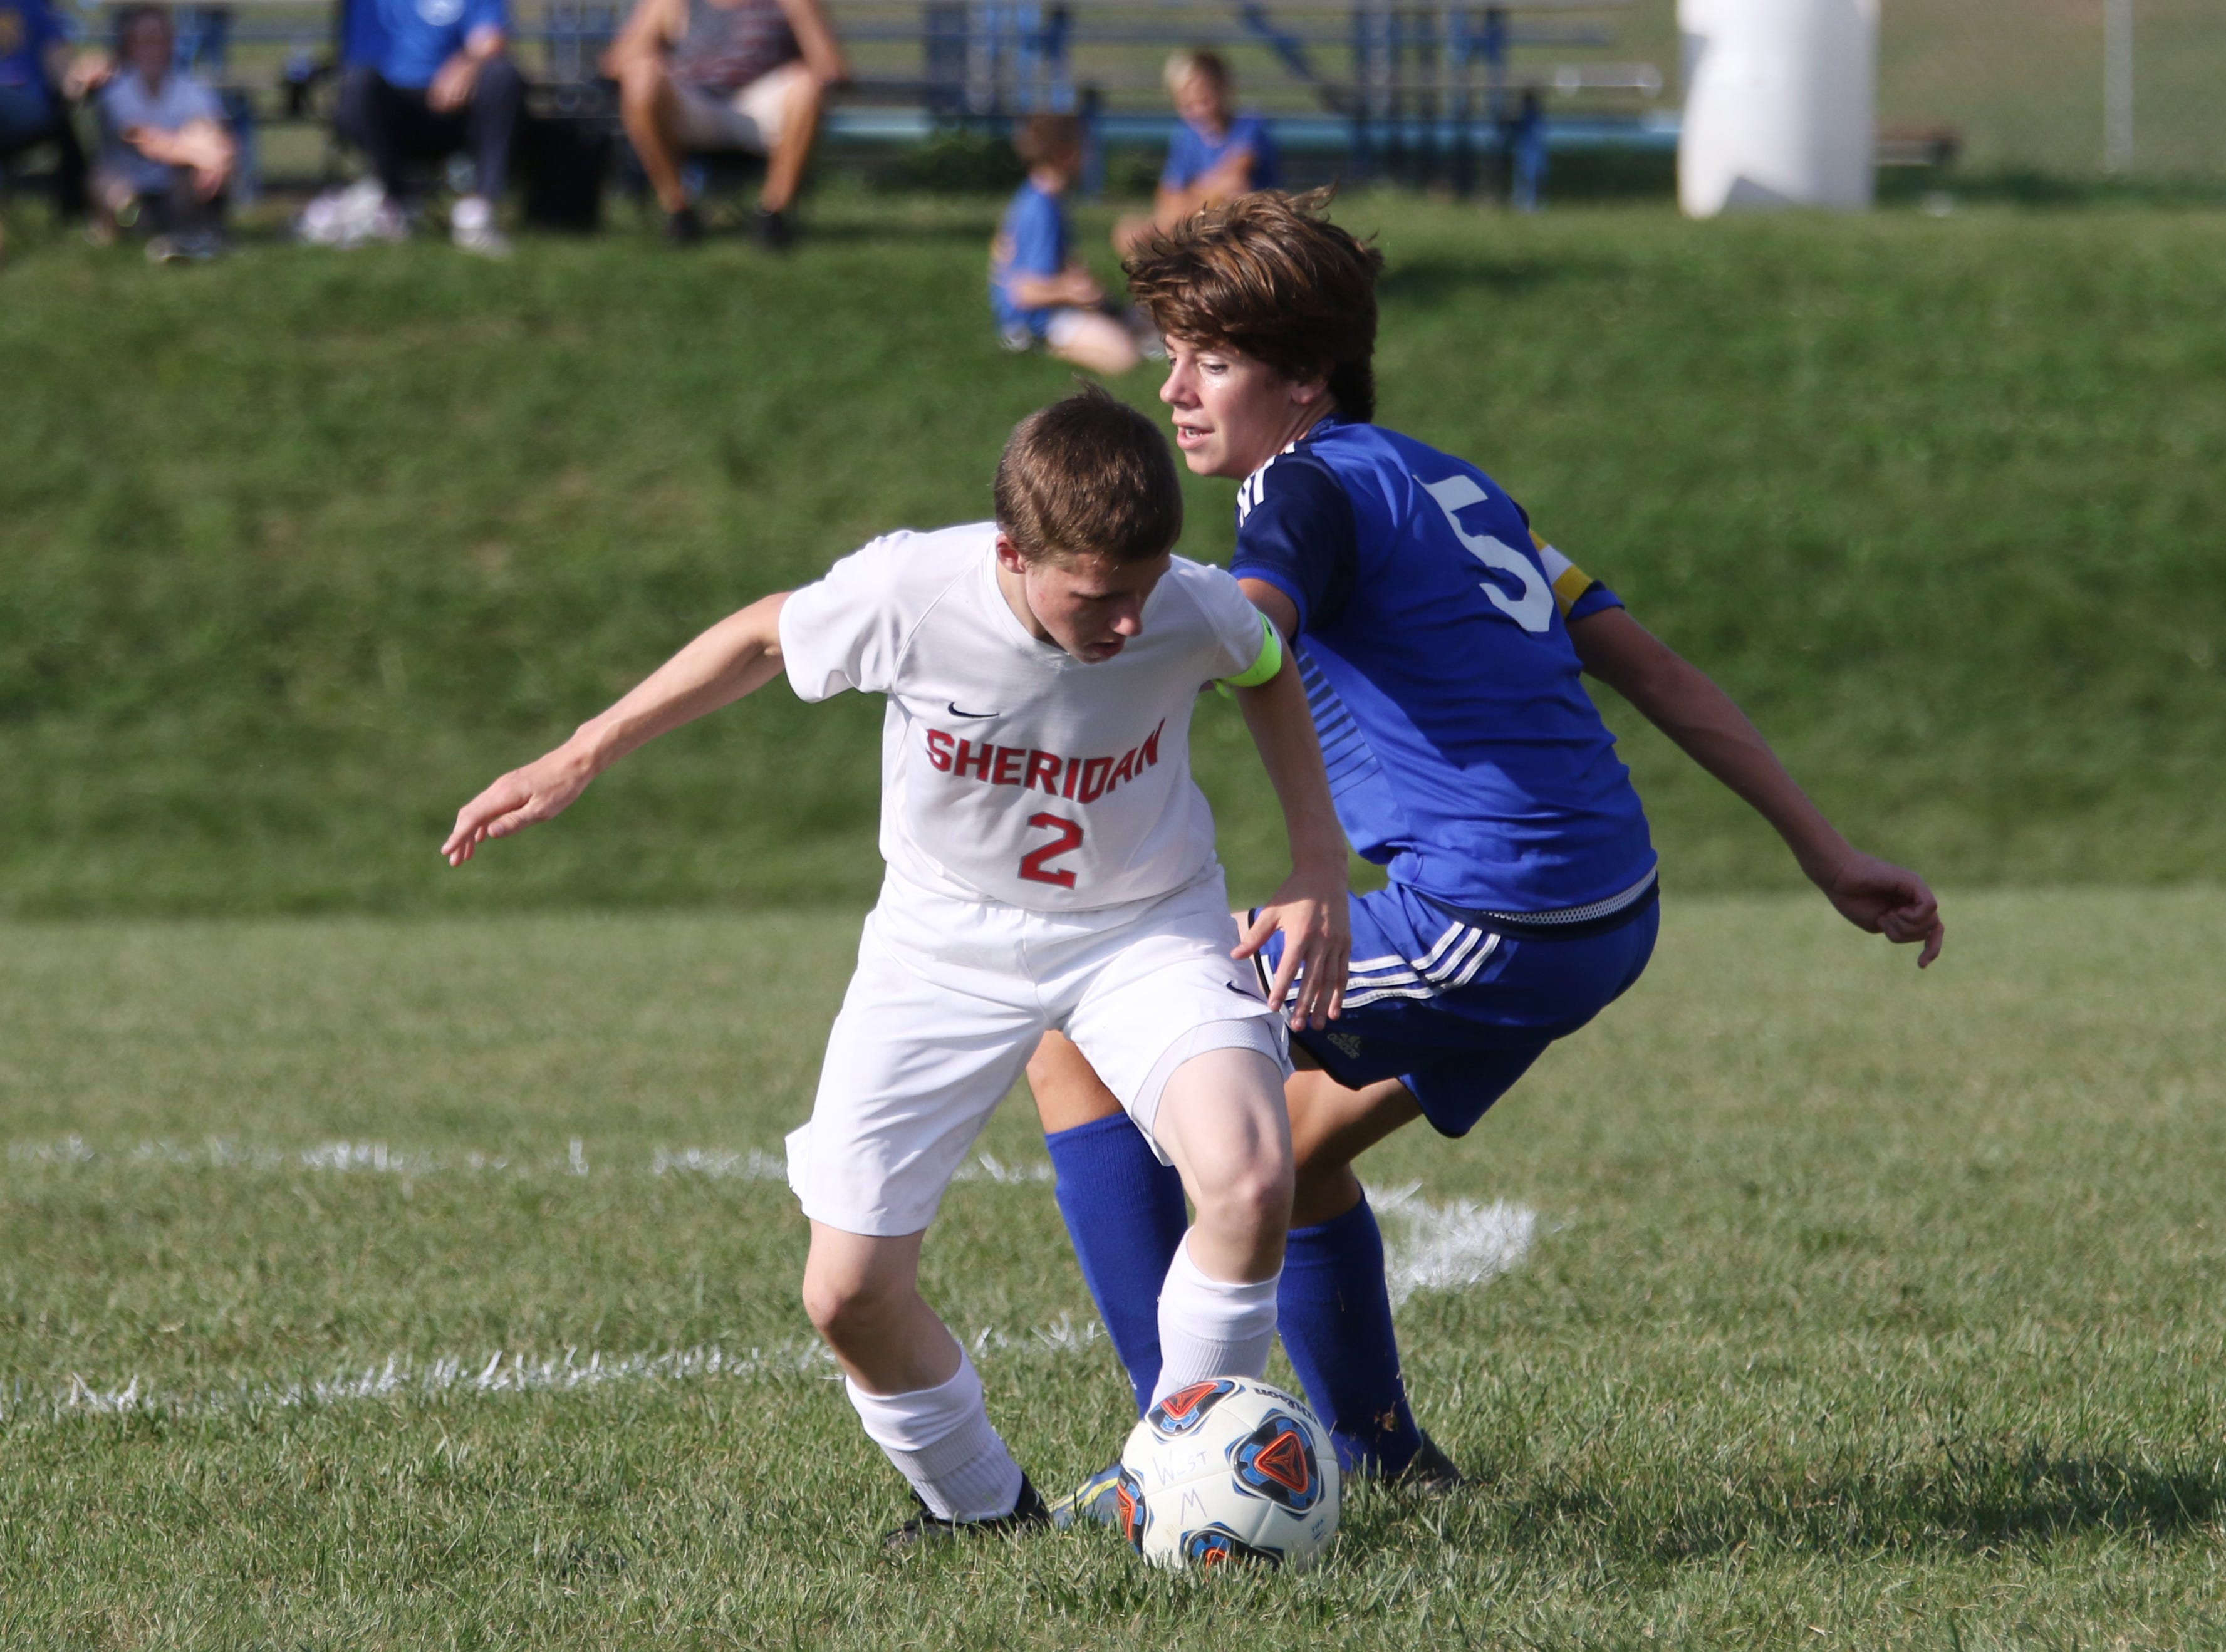 Sheridan's Jacob Rock moves with the ball against West Muskingum.